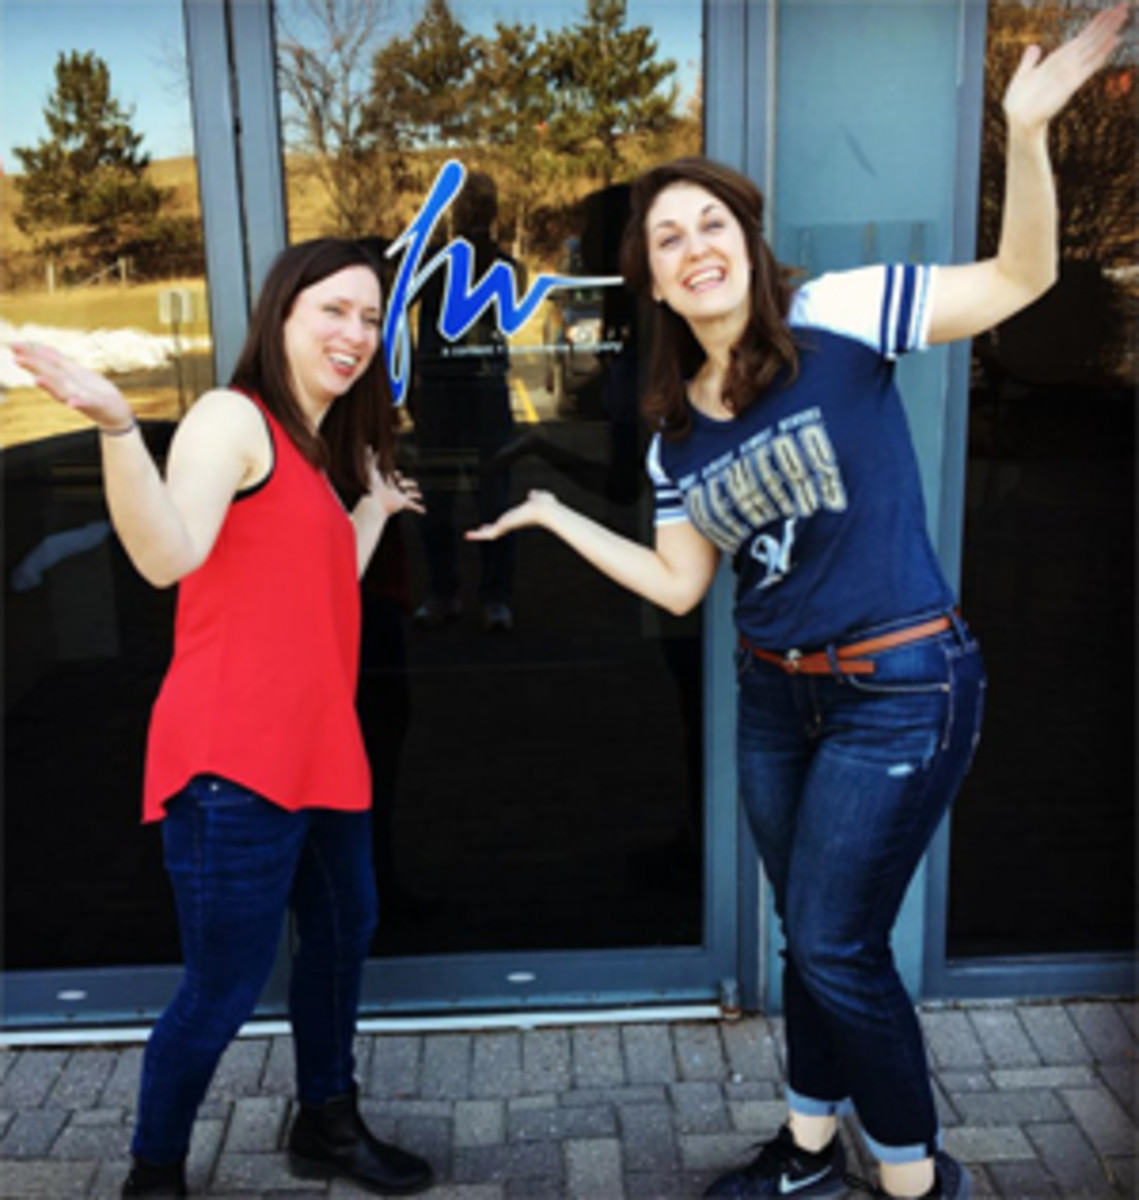 Saying hello from the new front entrance of F+W Media are current and former 'Numismatic News' graphic designers Rebecca Vogel (left) and Nicole MacMartin (right).